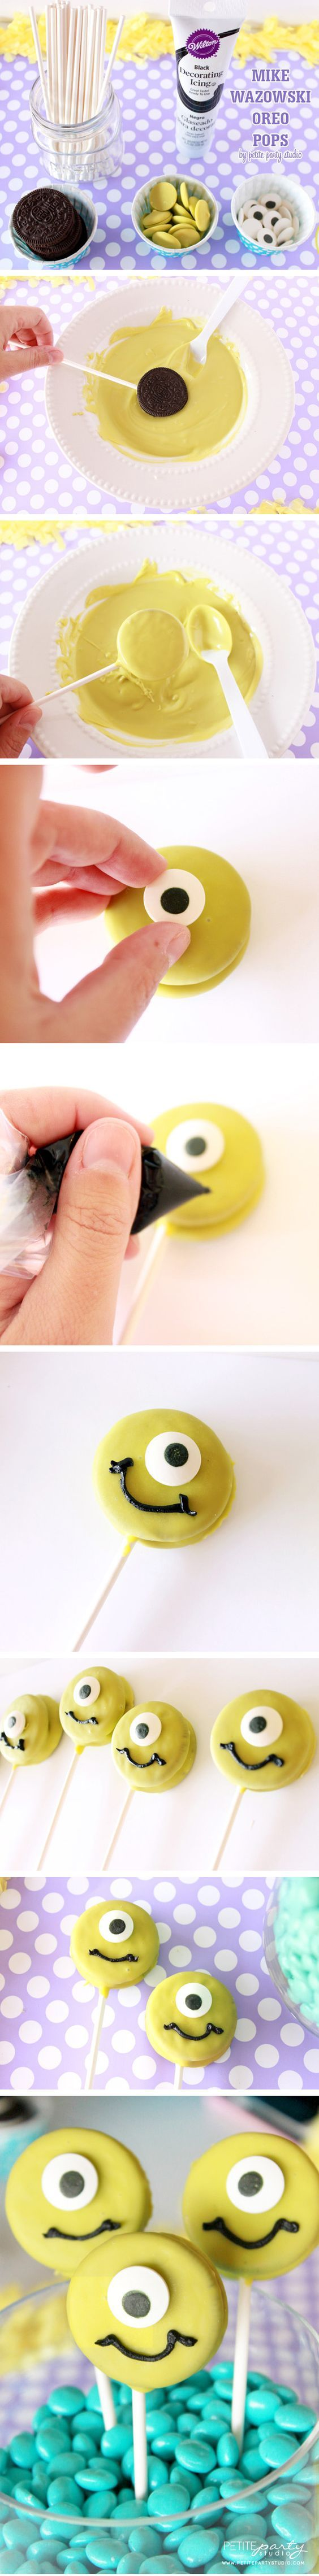 13 Treats Inspired By Your Favorite Disney Movies | http://www.hercampus.com/health/food/13-treats-inspired-your-favorite-disney-movies | Mike Wazowski Monsters Inc Monsters University Oreo Pops Cookies